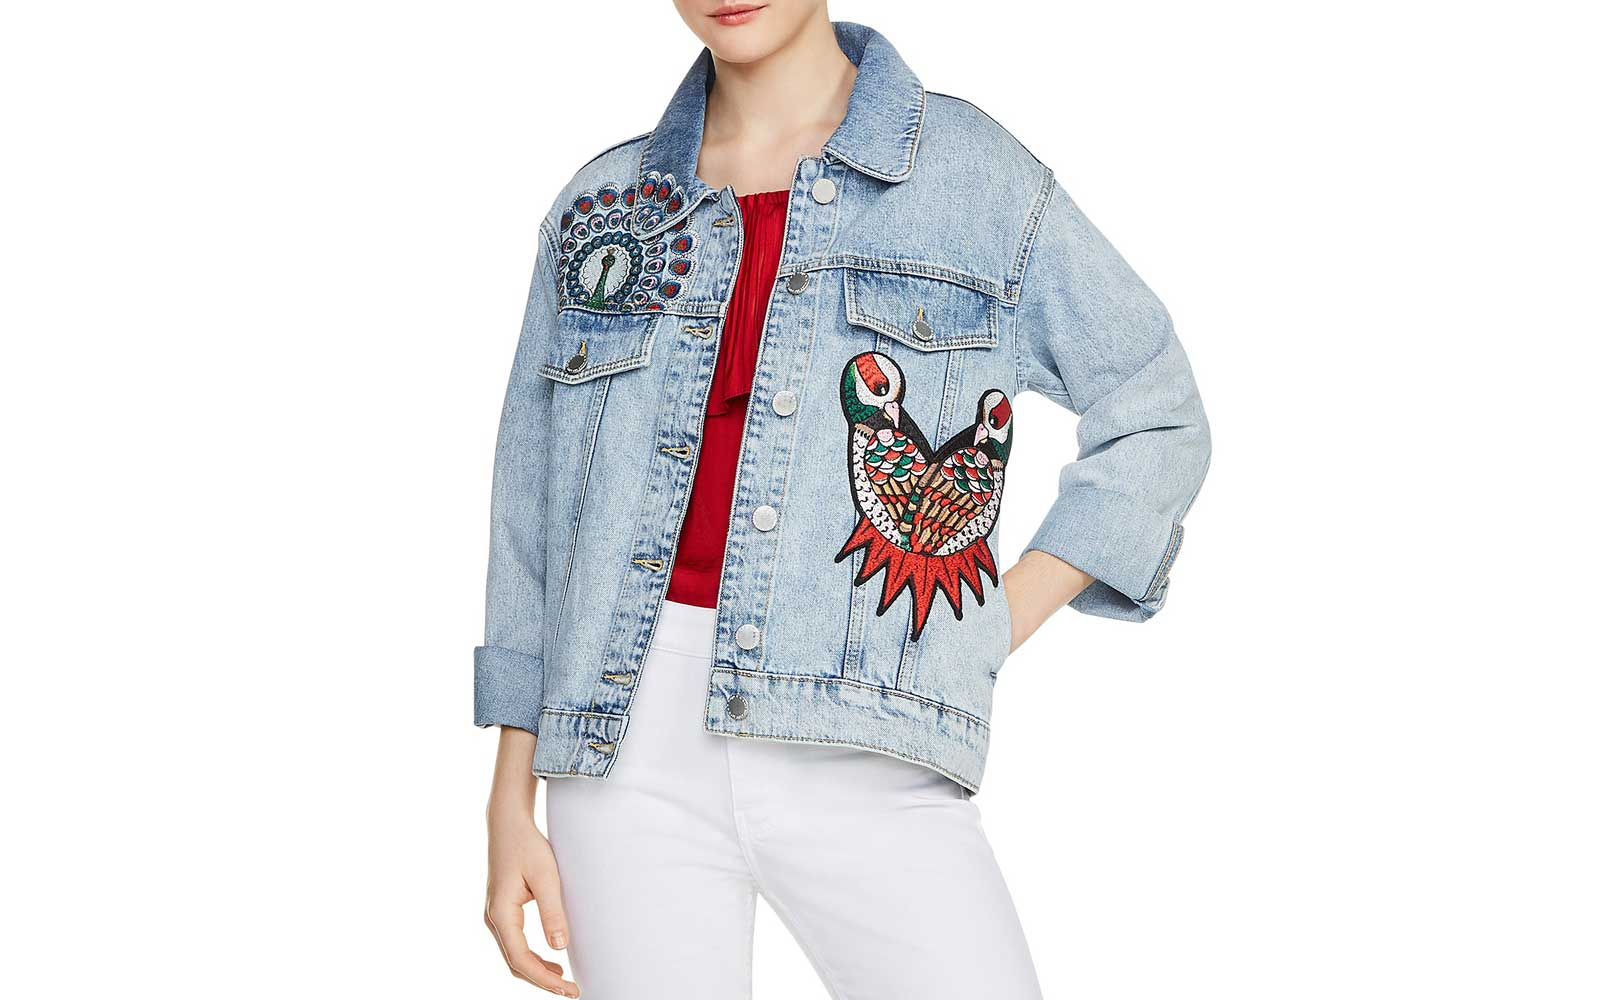 Maje 'Baltimore' Embroidered Denim Jacket